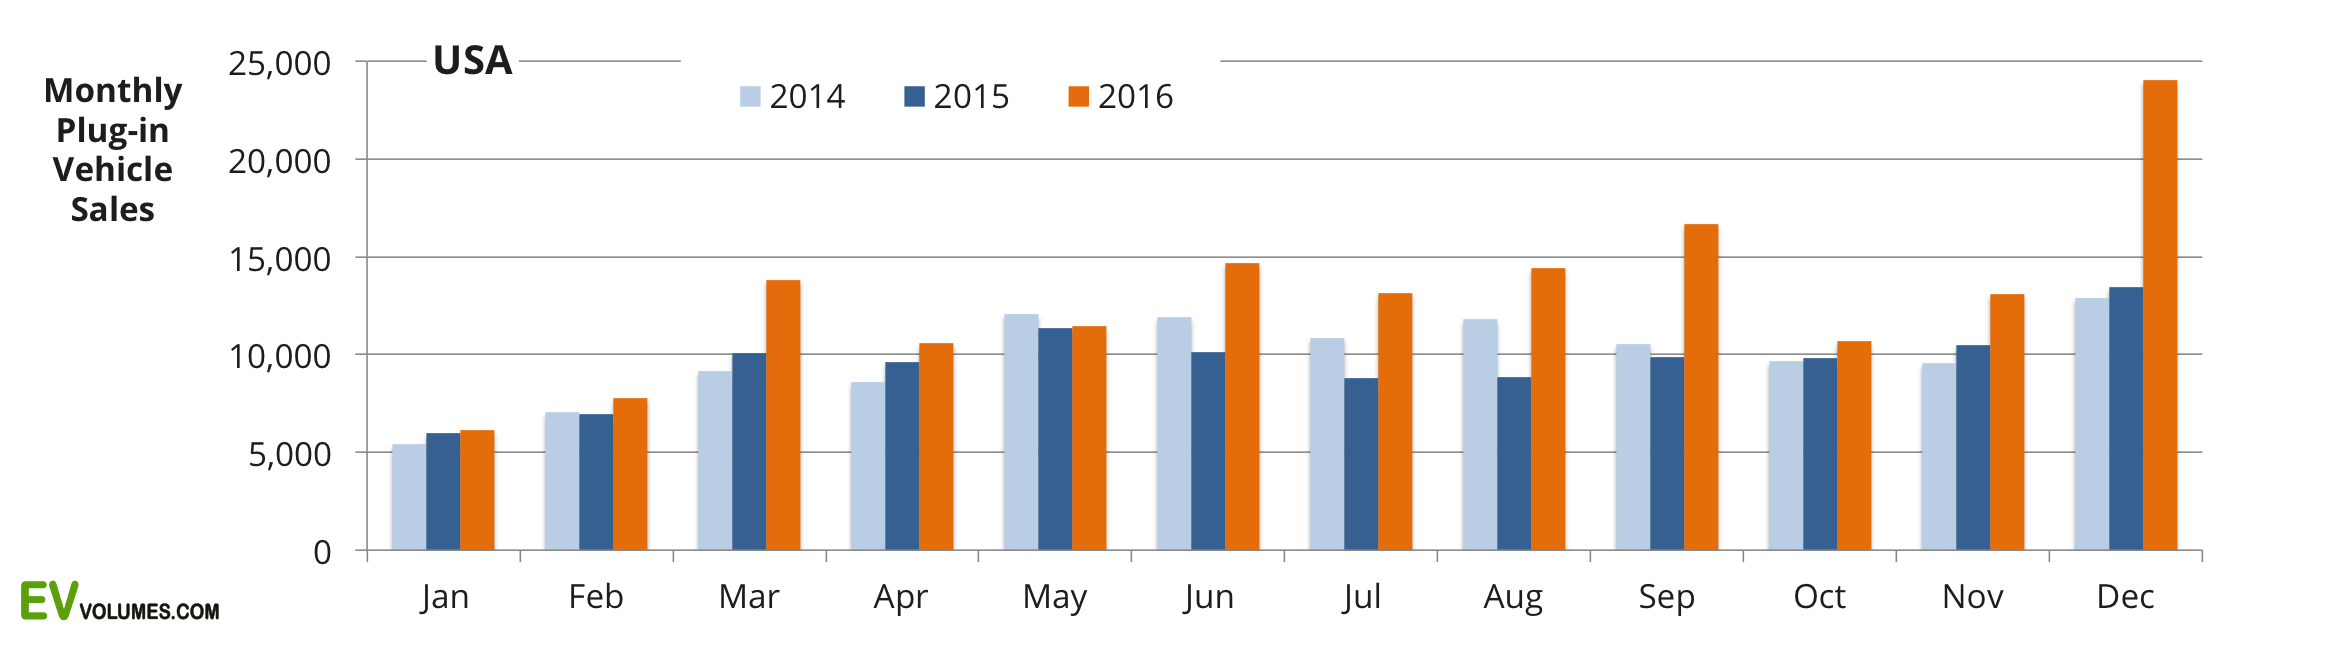 first USA Plug-in Vehicle Sales for 2016 – Final image